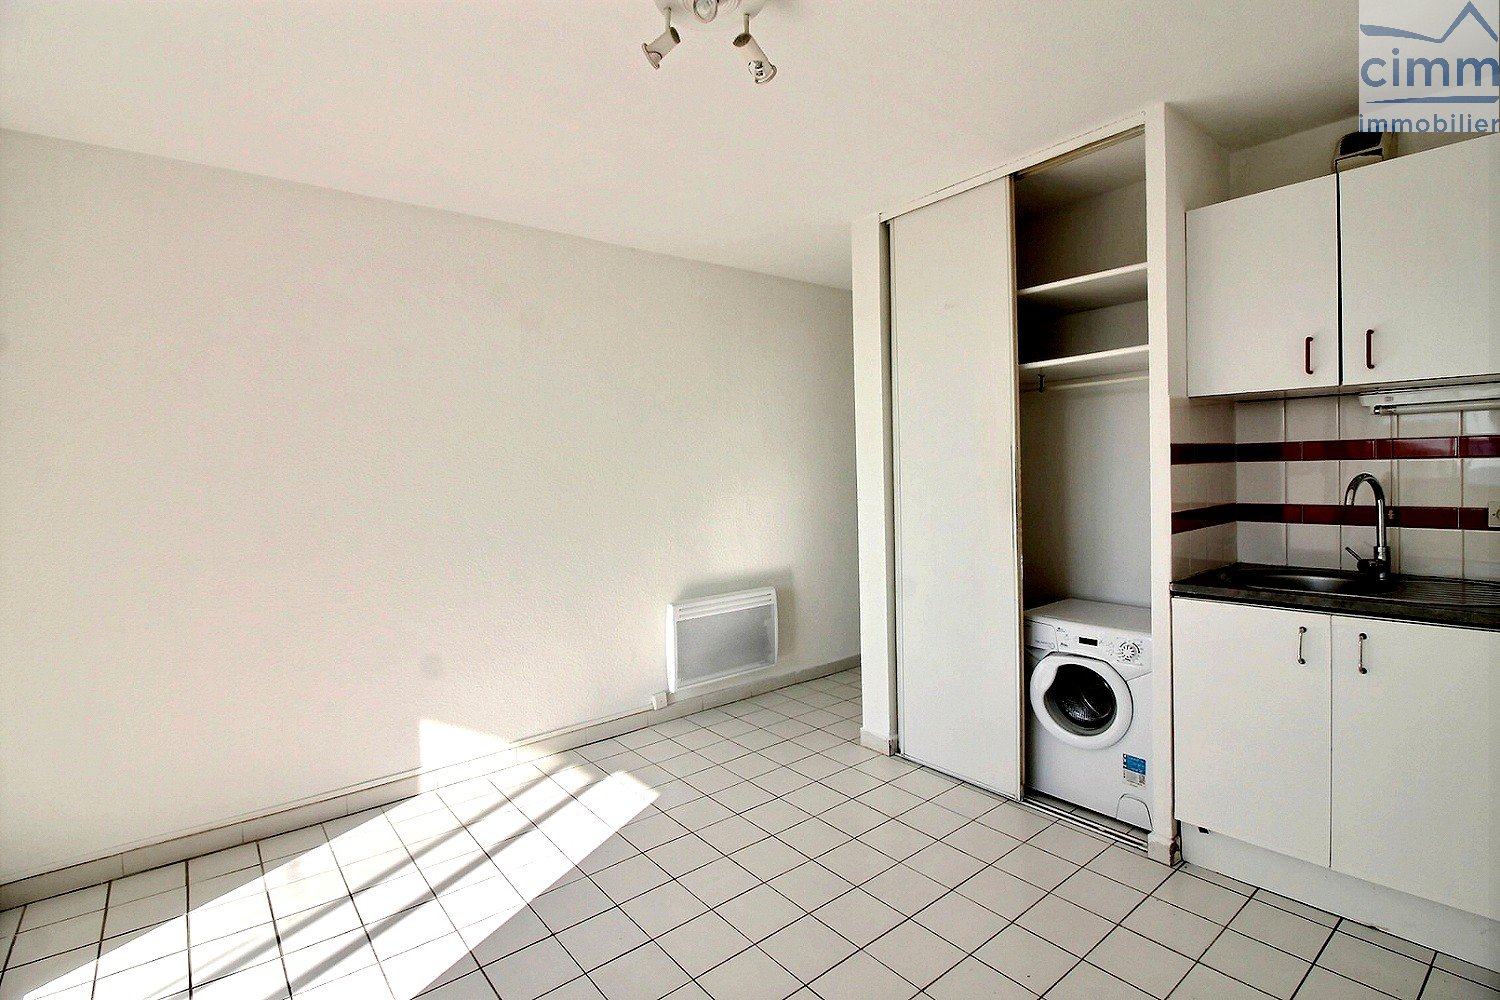 Image - Appartement - VALRAS PLAGE - Vente - 26m² - IMMOPLAGE VALRAS-PLAGE